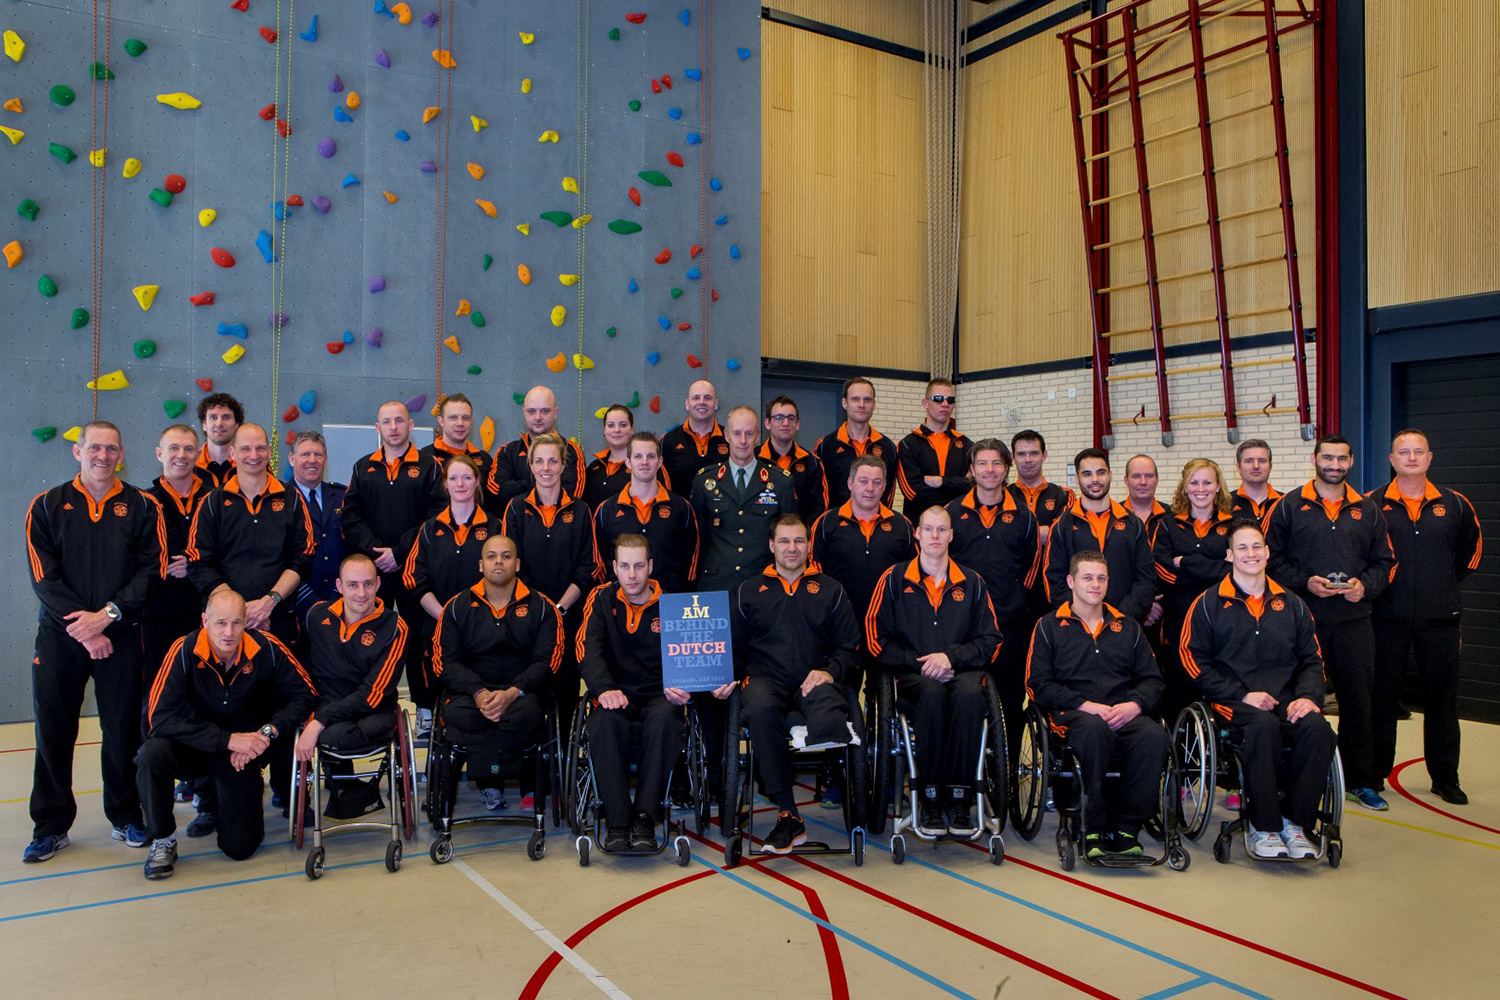 Dutch Invictus Team members show their strength during games